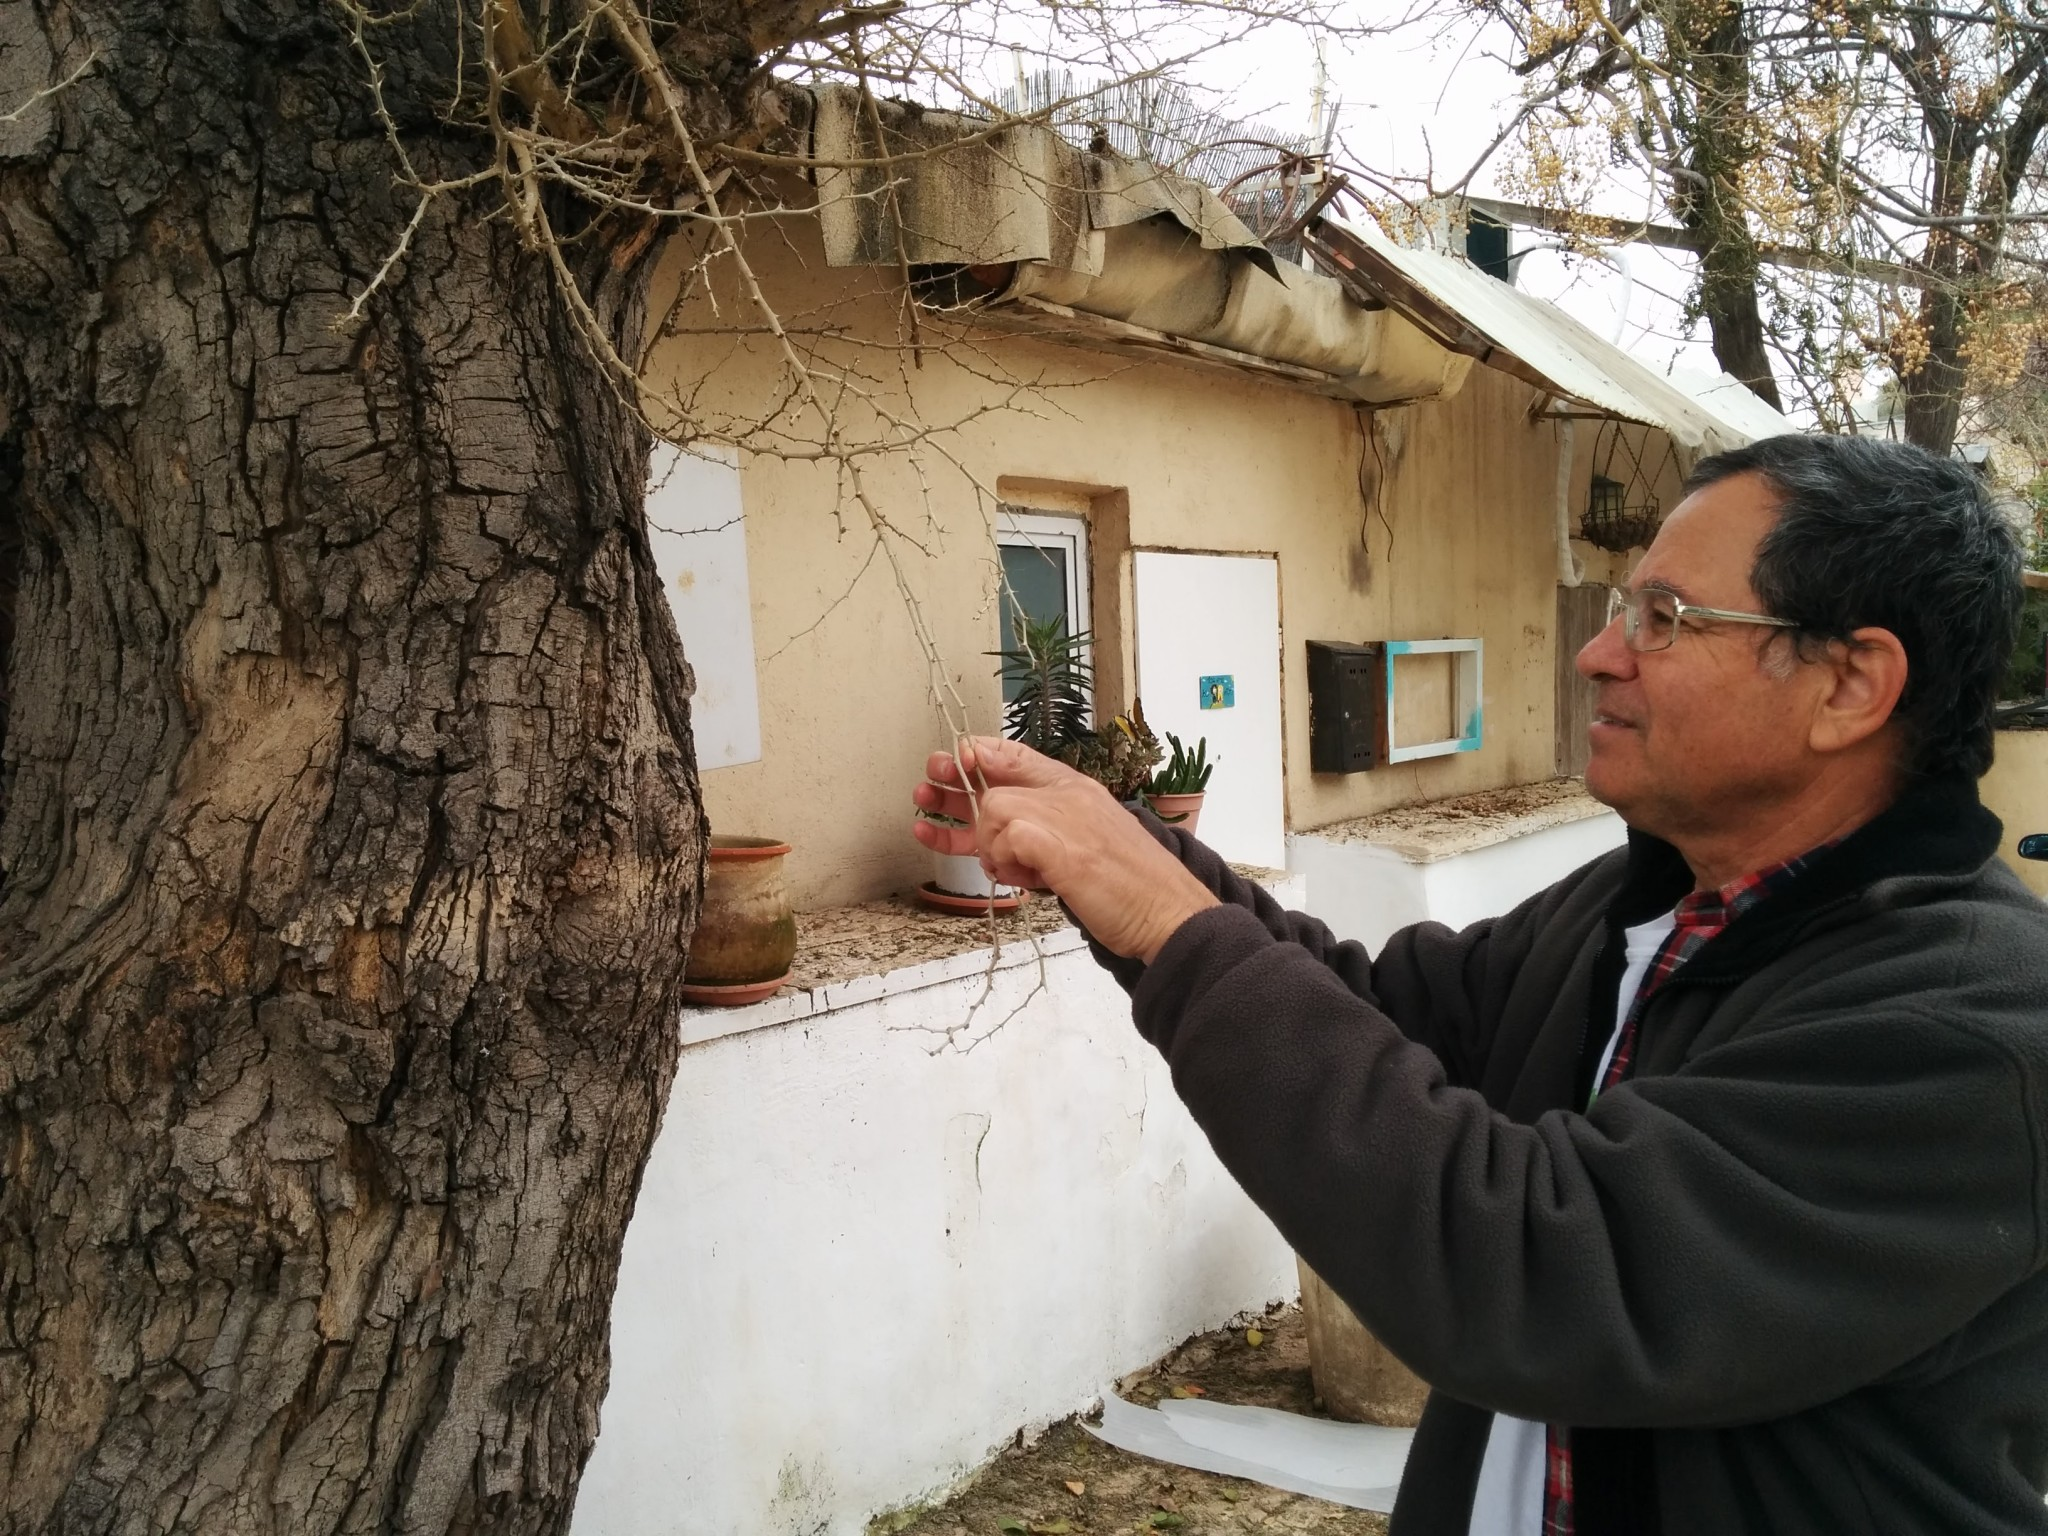 Israeli tree surveyor Yaacov Shkolnik with the acacia albida tree in Neve Tzedek. Photo by Viva Sarah Press